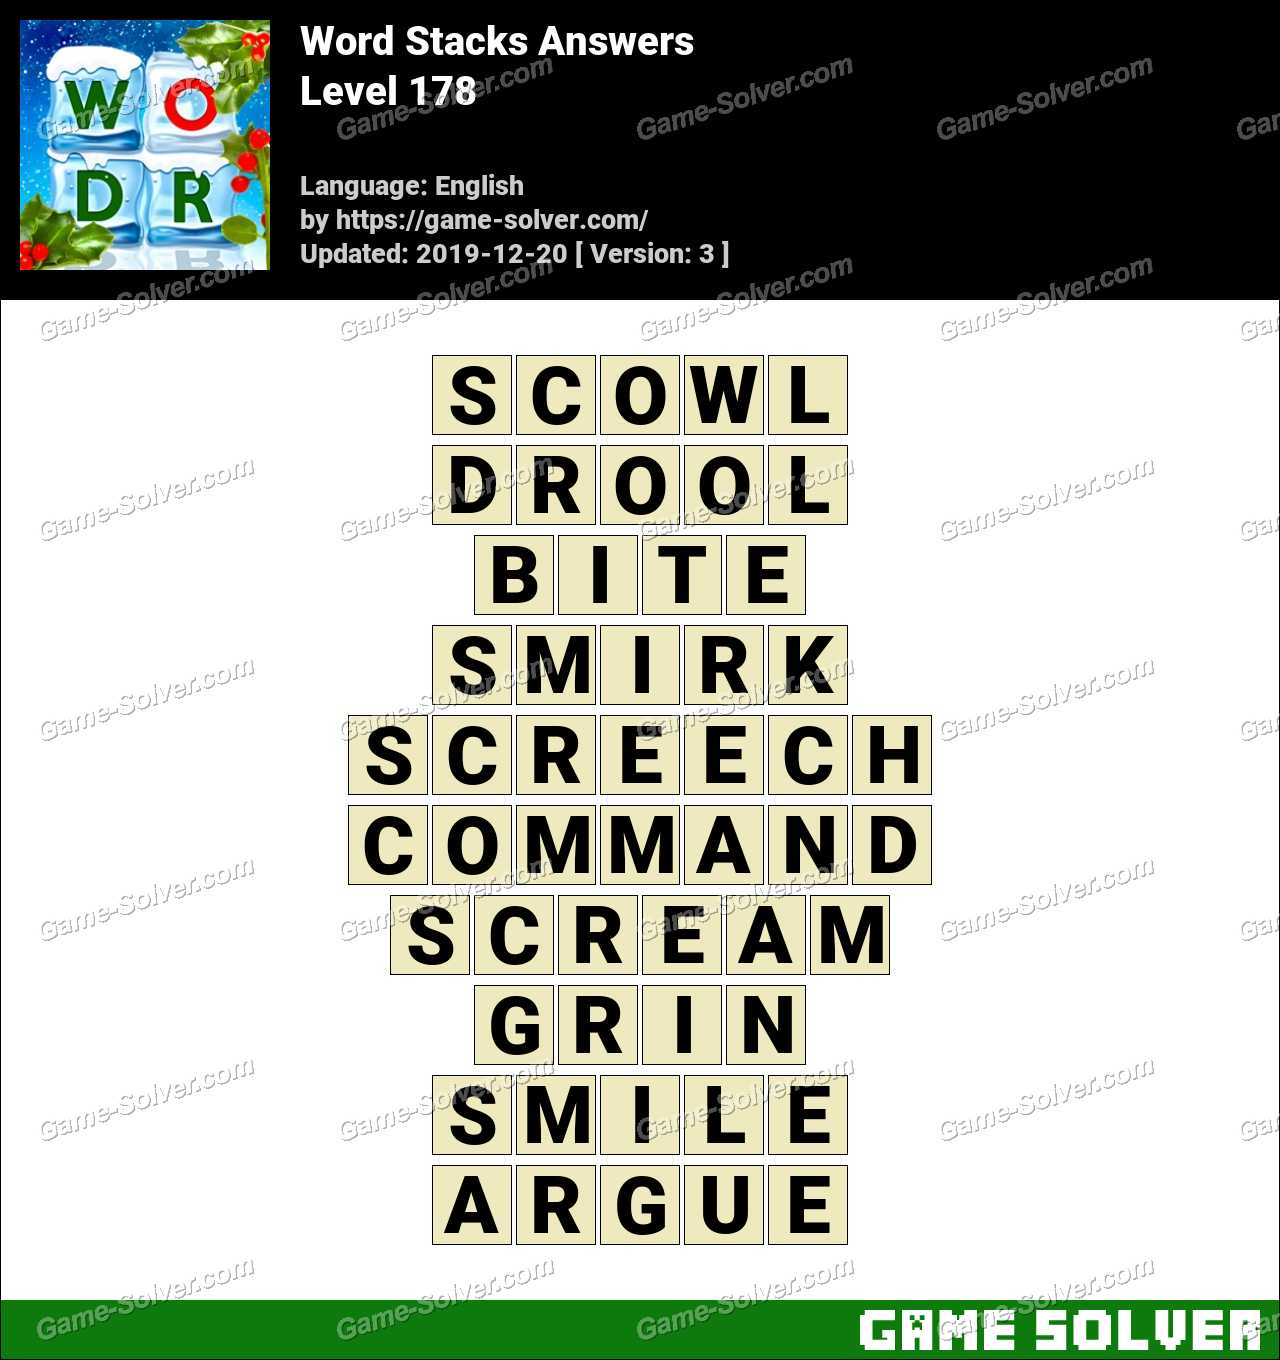 Word Stacks Level 178 Answers